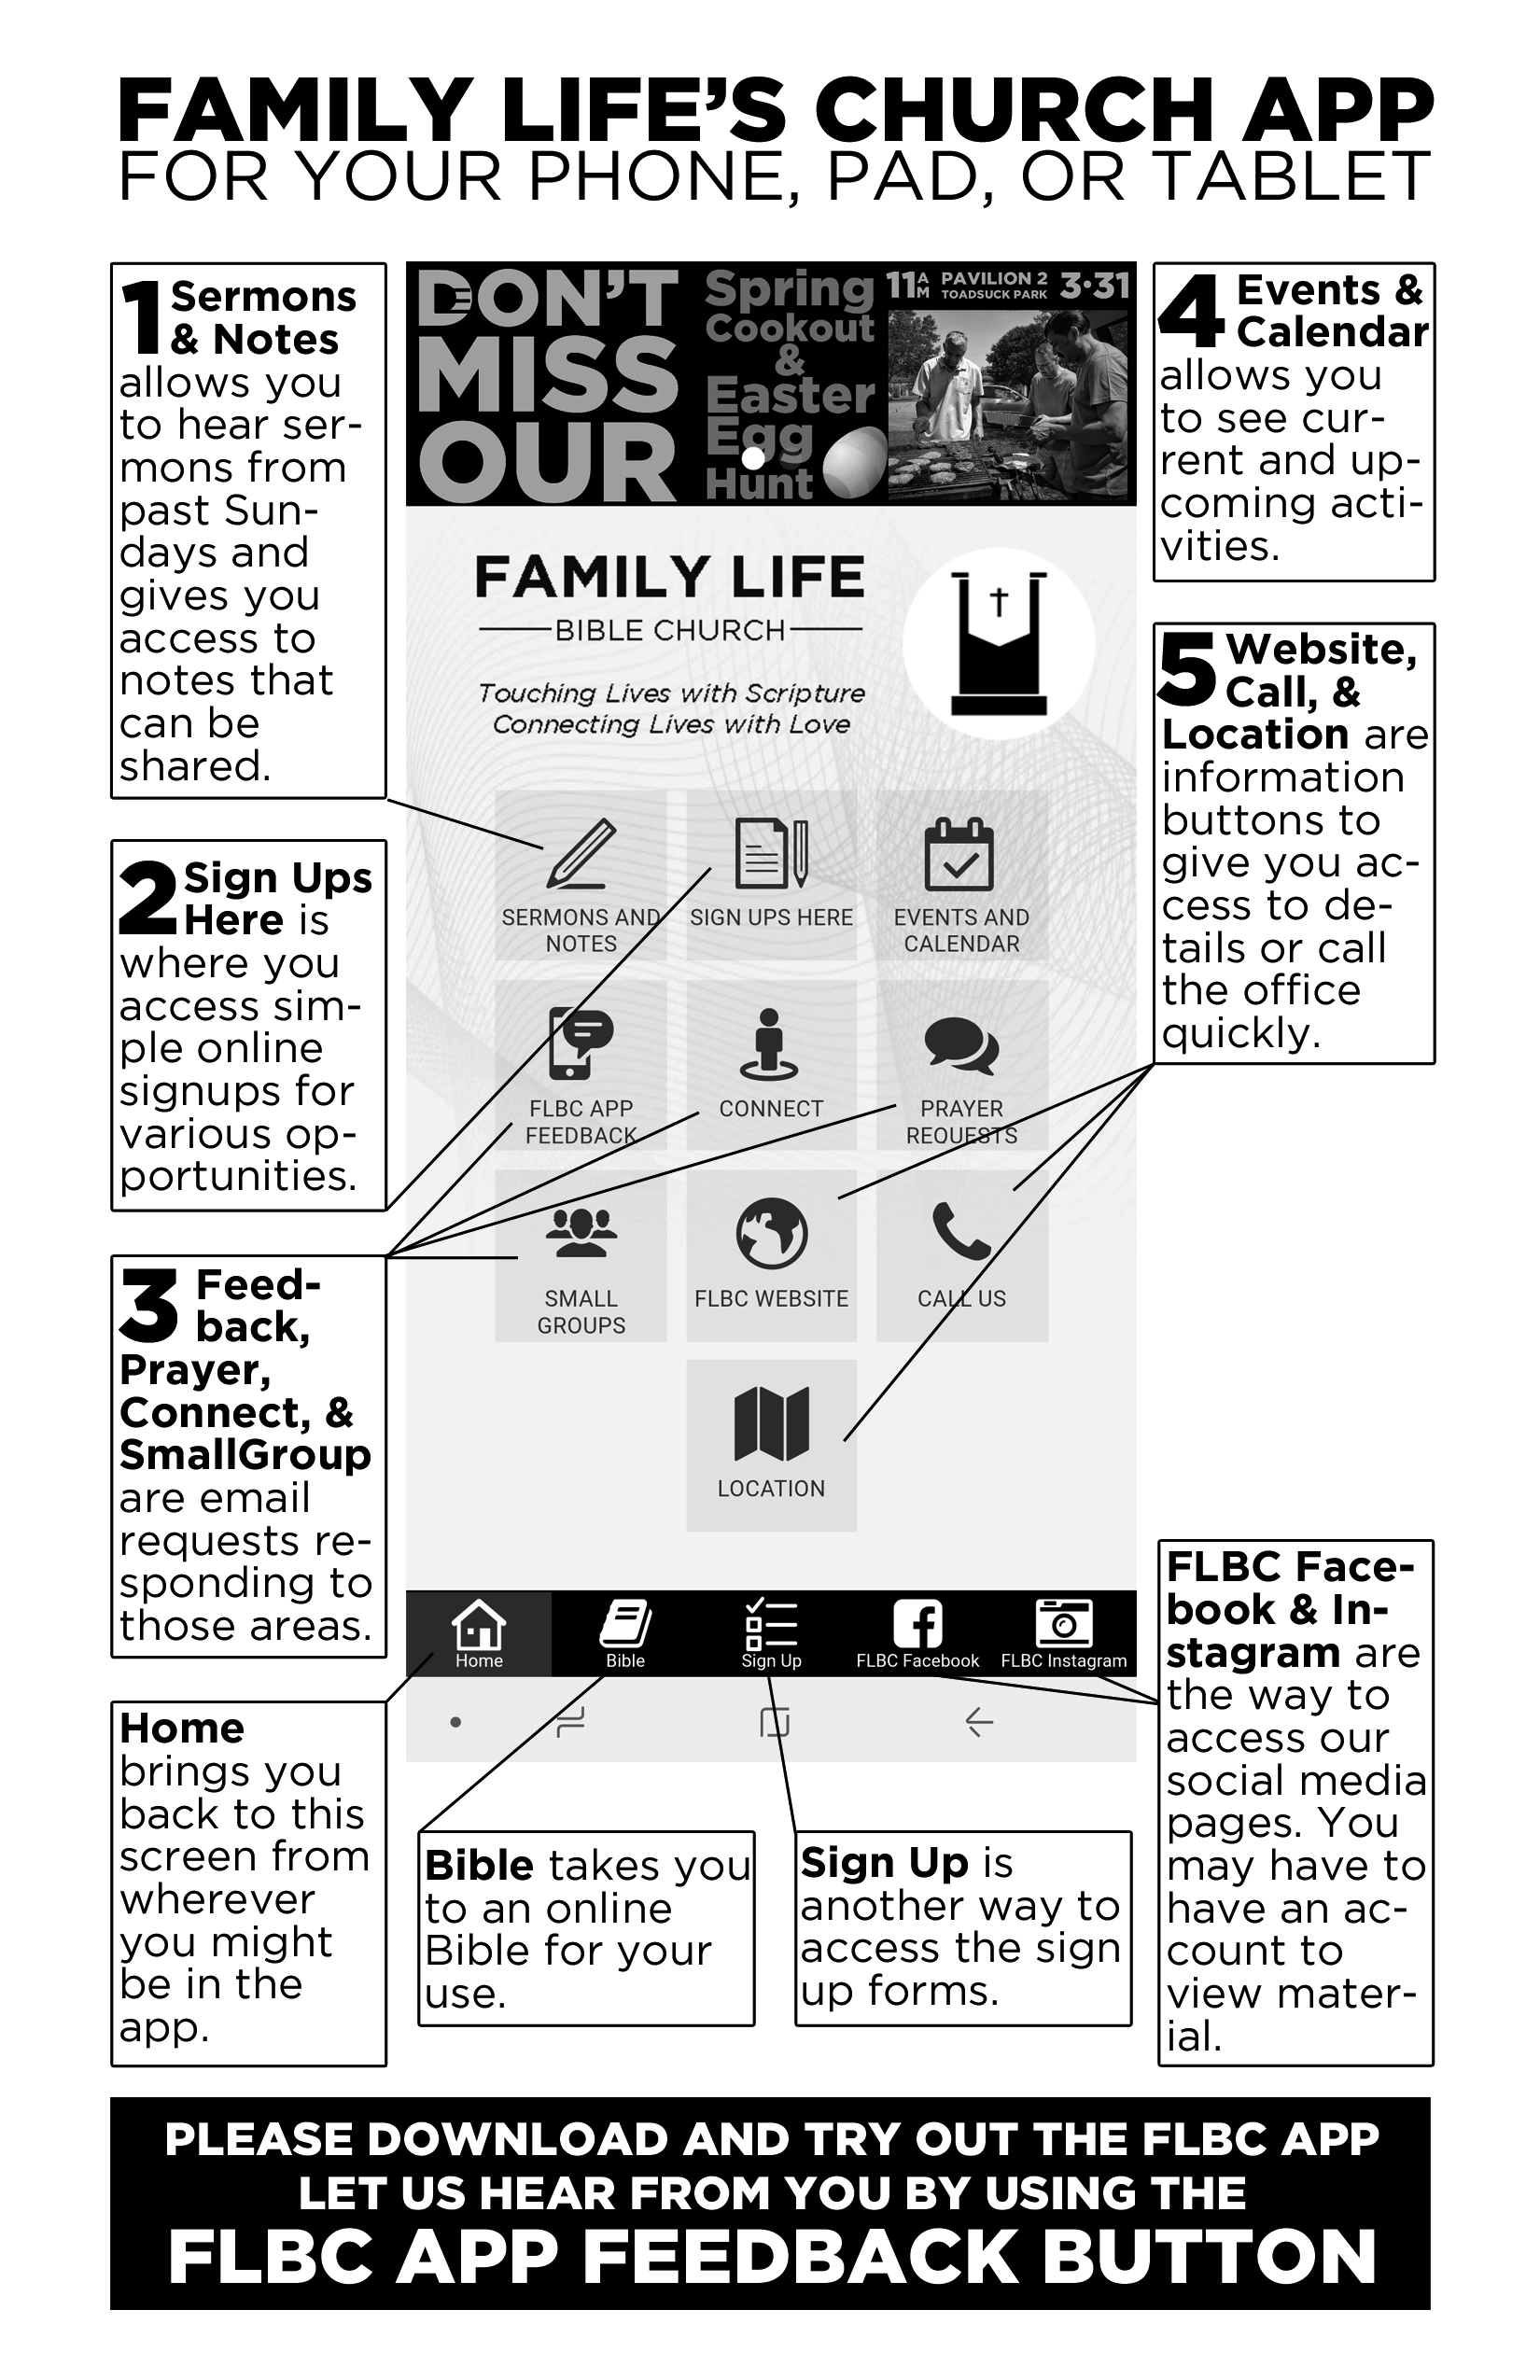 Using Our App - Once added to your device you can try out the features on Family Life's app. Use this guide to help you get started. There will be some new features added from time to time.